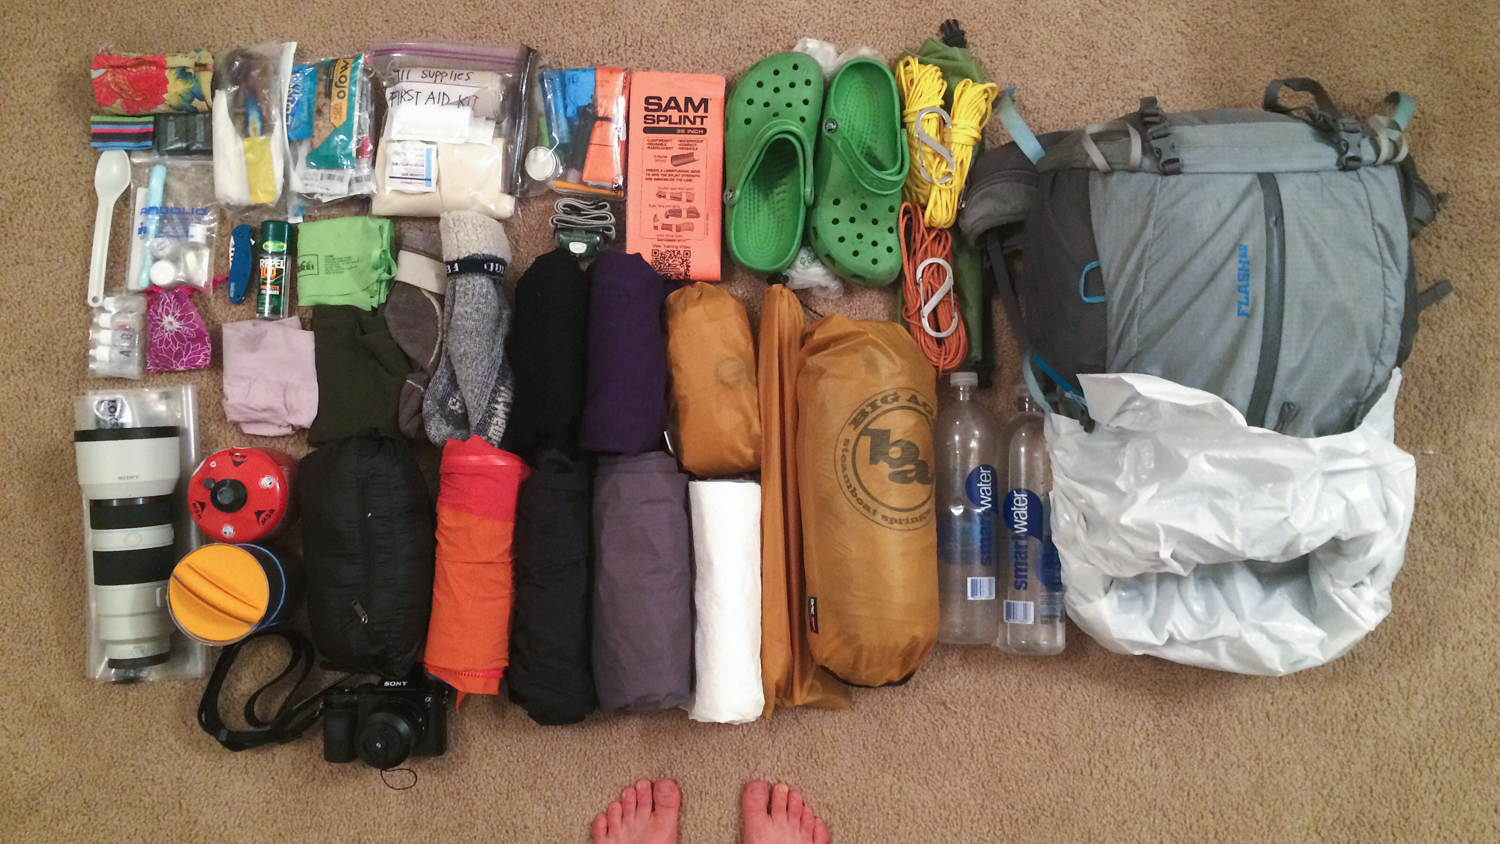 I took a few more things than I would on a solo trip since we were a group of seven. Some new things I've added to my overall pack weight include: more robust first aid kit, survival kit, and 911 food. My pack was heavier than normal, but overall it was still quite manageable.